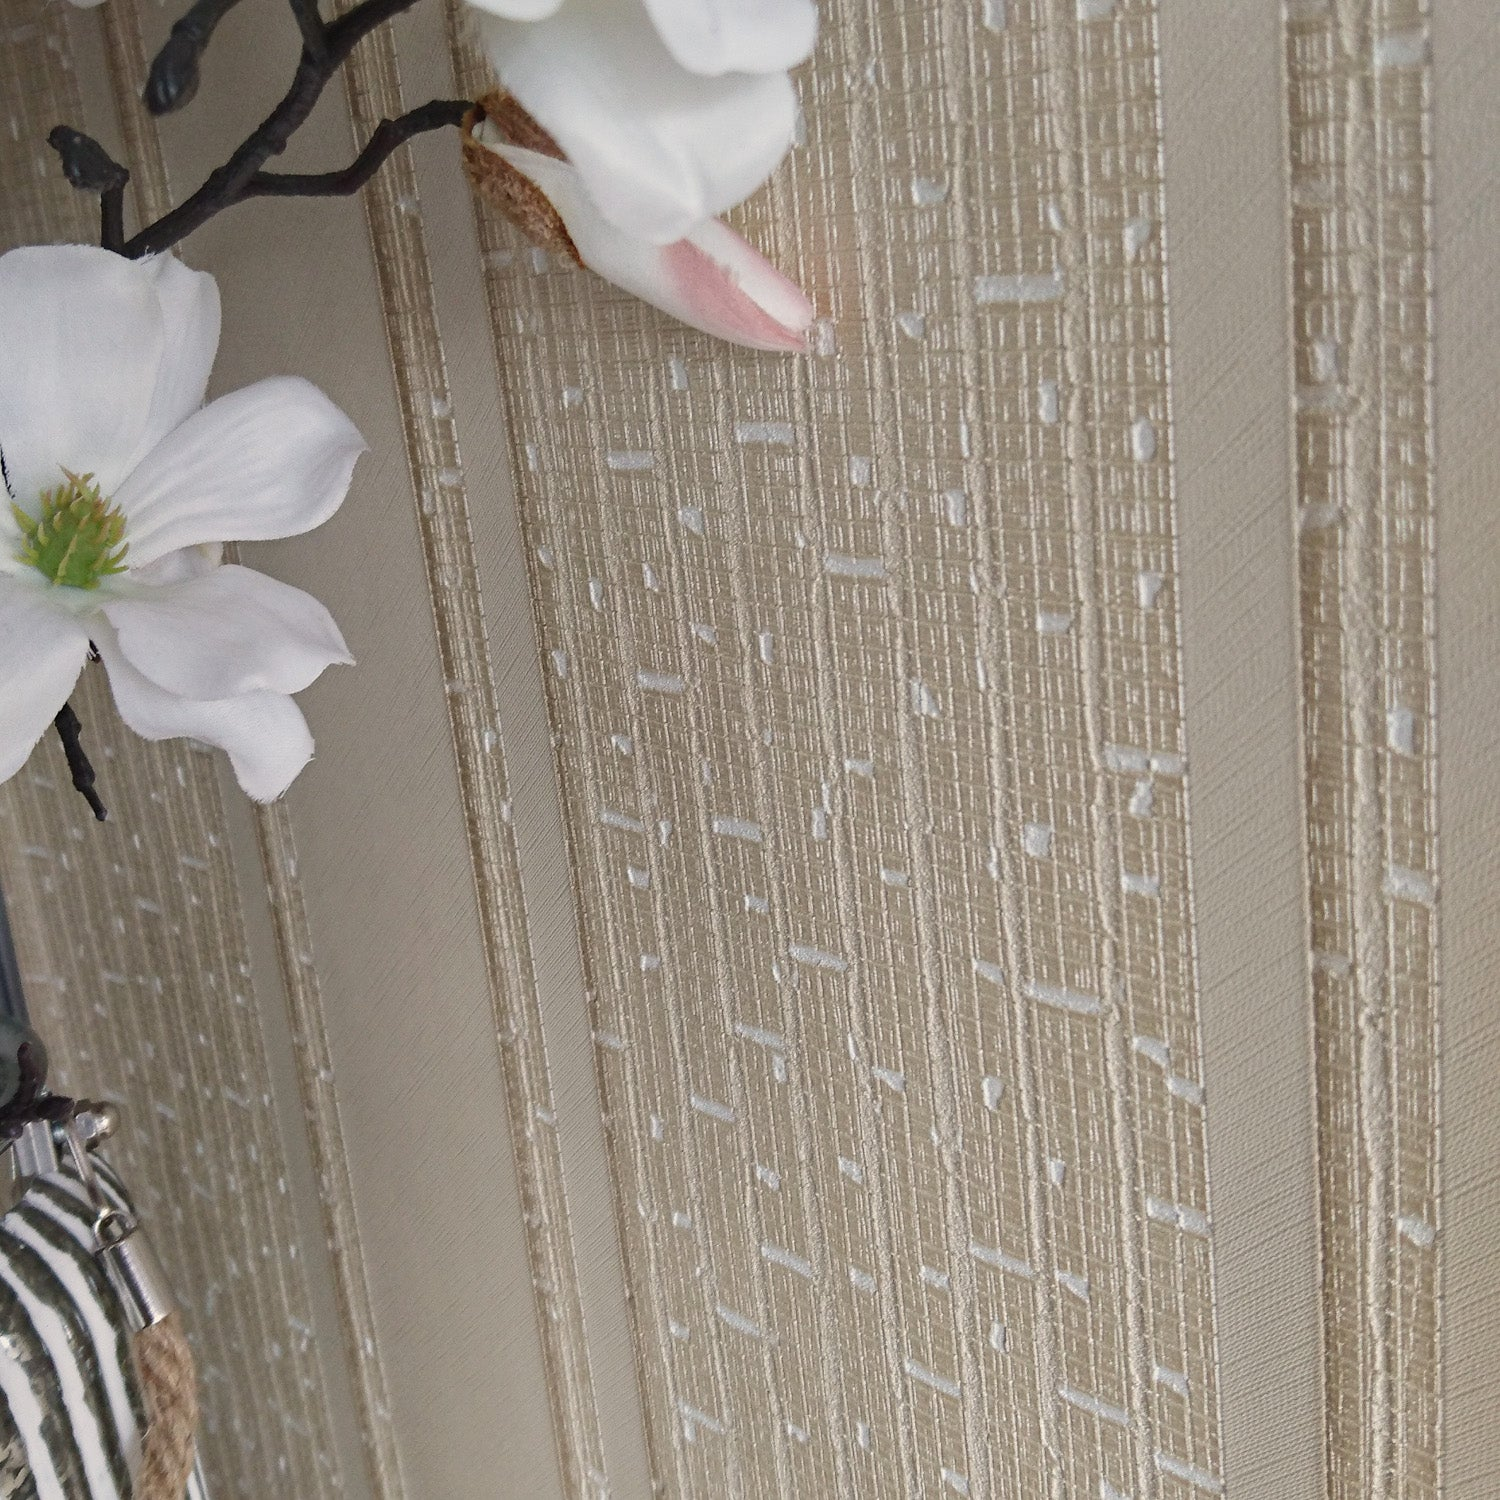 Versace 'Parvus Stripe' Designer textured Stripe Wallpaper in Cream